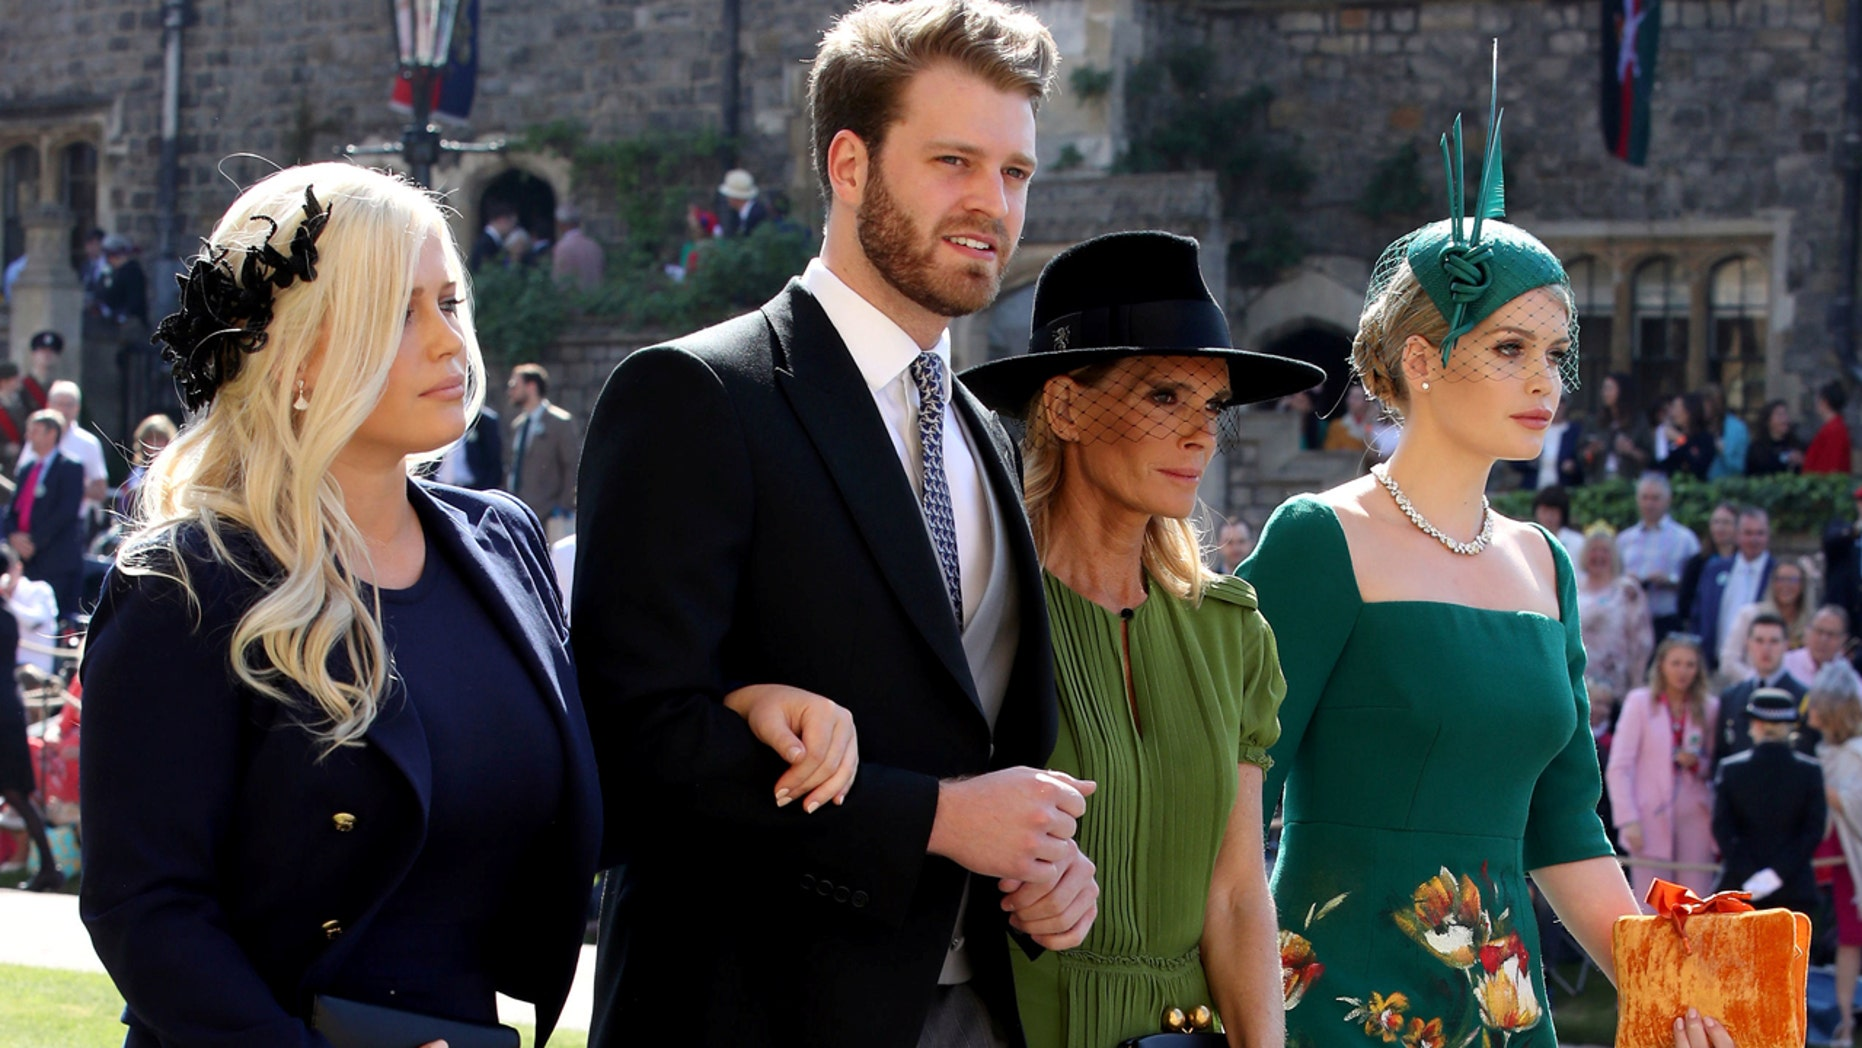 The dashing Louis Spencer, cousin of Prince Harry, with his sisters Eliza and Kitty Spencer, and their mother, Victoria Aitken, to the royal wedding.